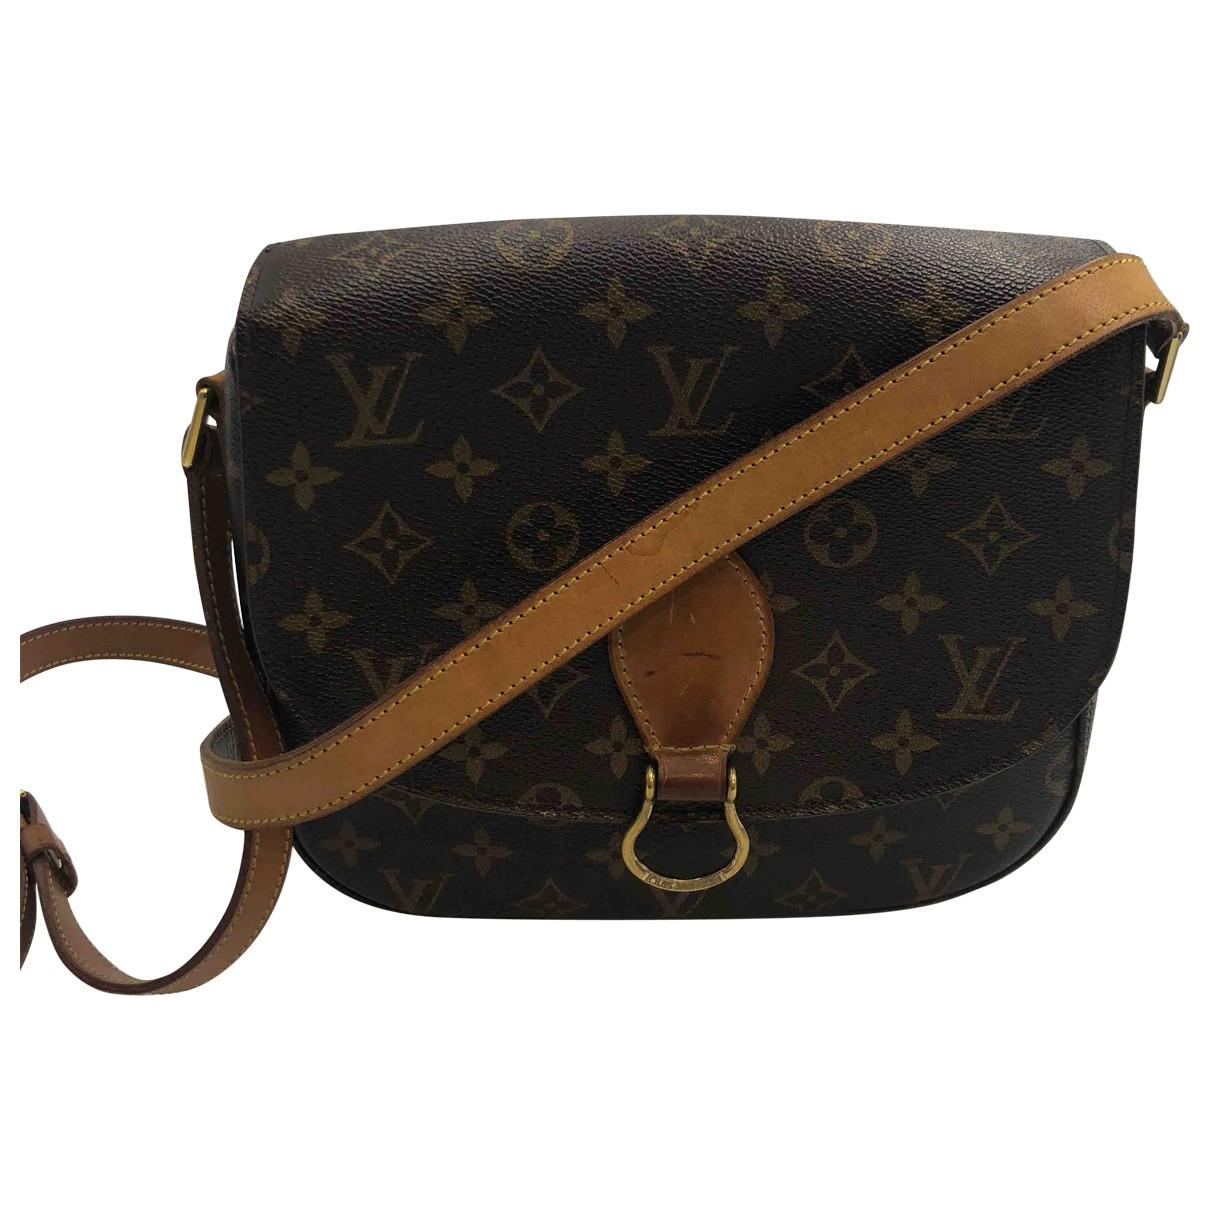 641d8889b6fa2 Lyst - Louis Vuitton Saint Cloud Cloth Clutch Bag in Black